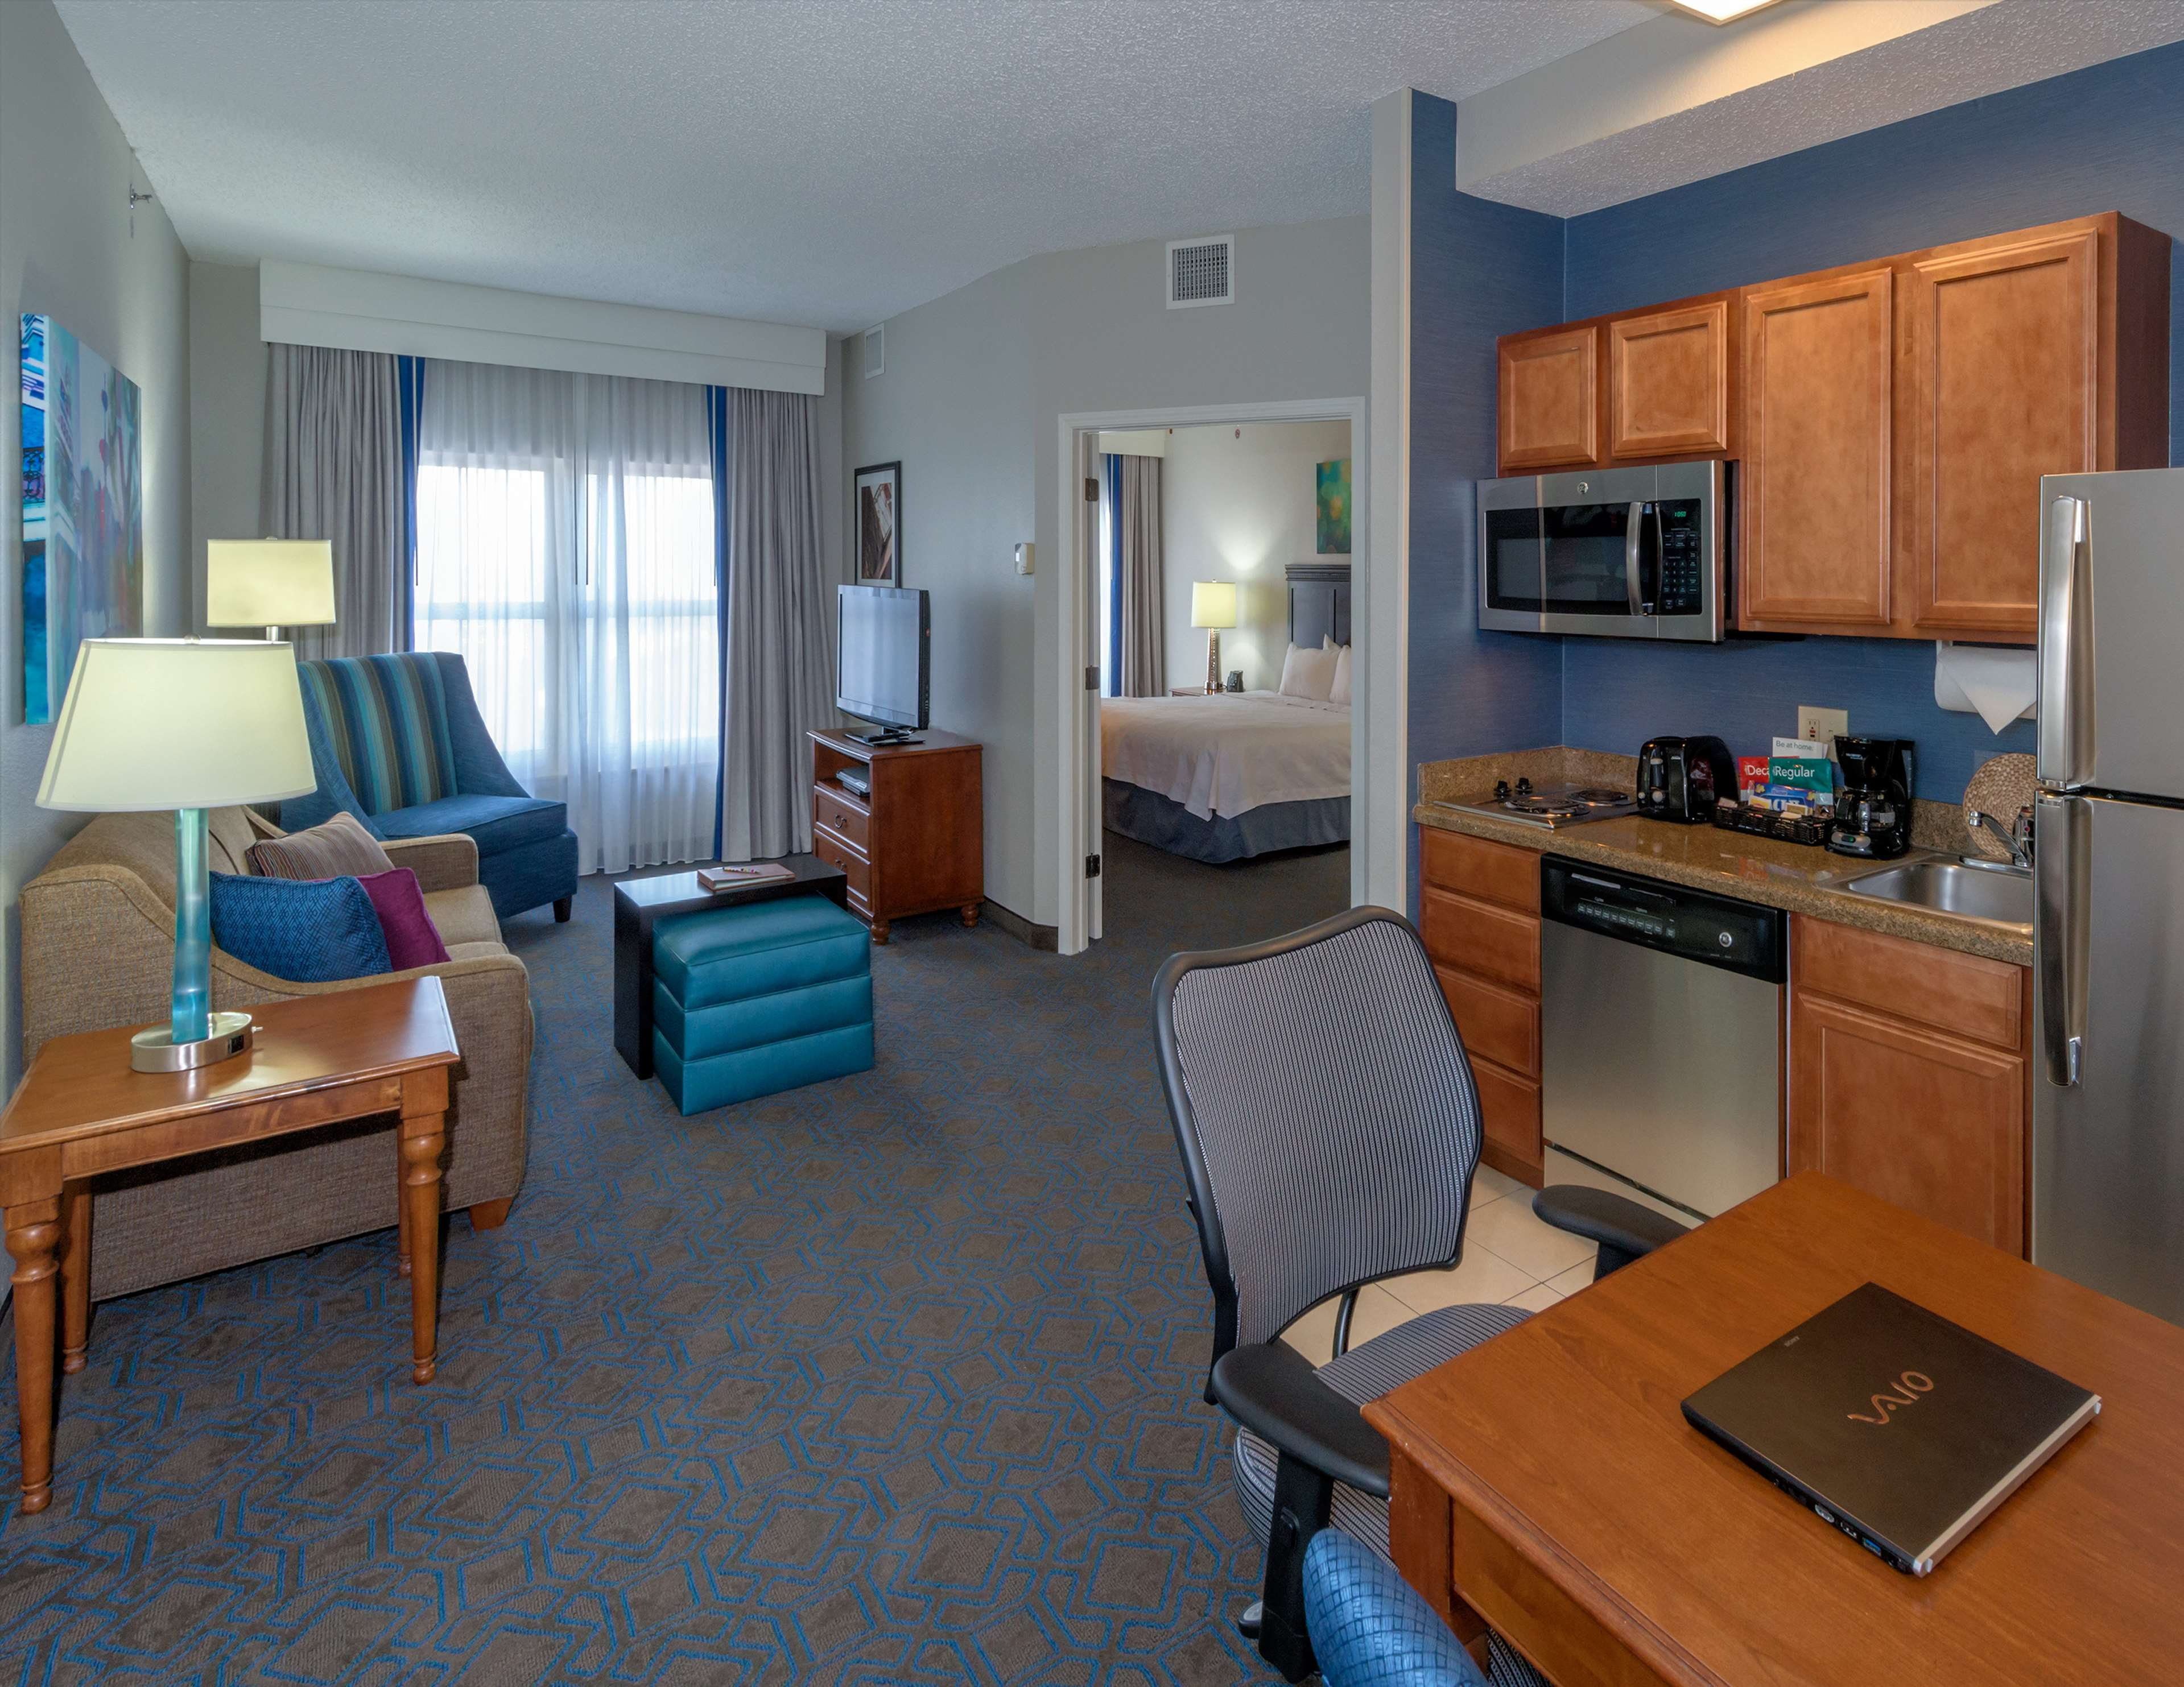 Homewood Suites by Hilton New Orleans image 17